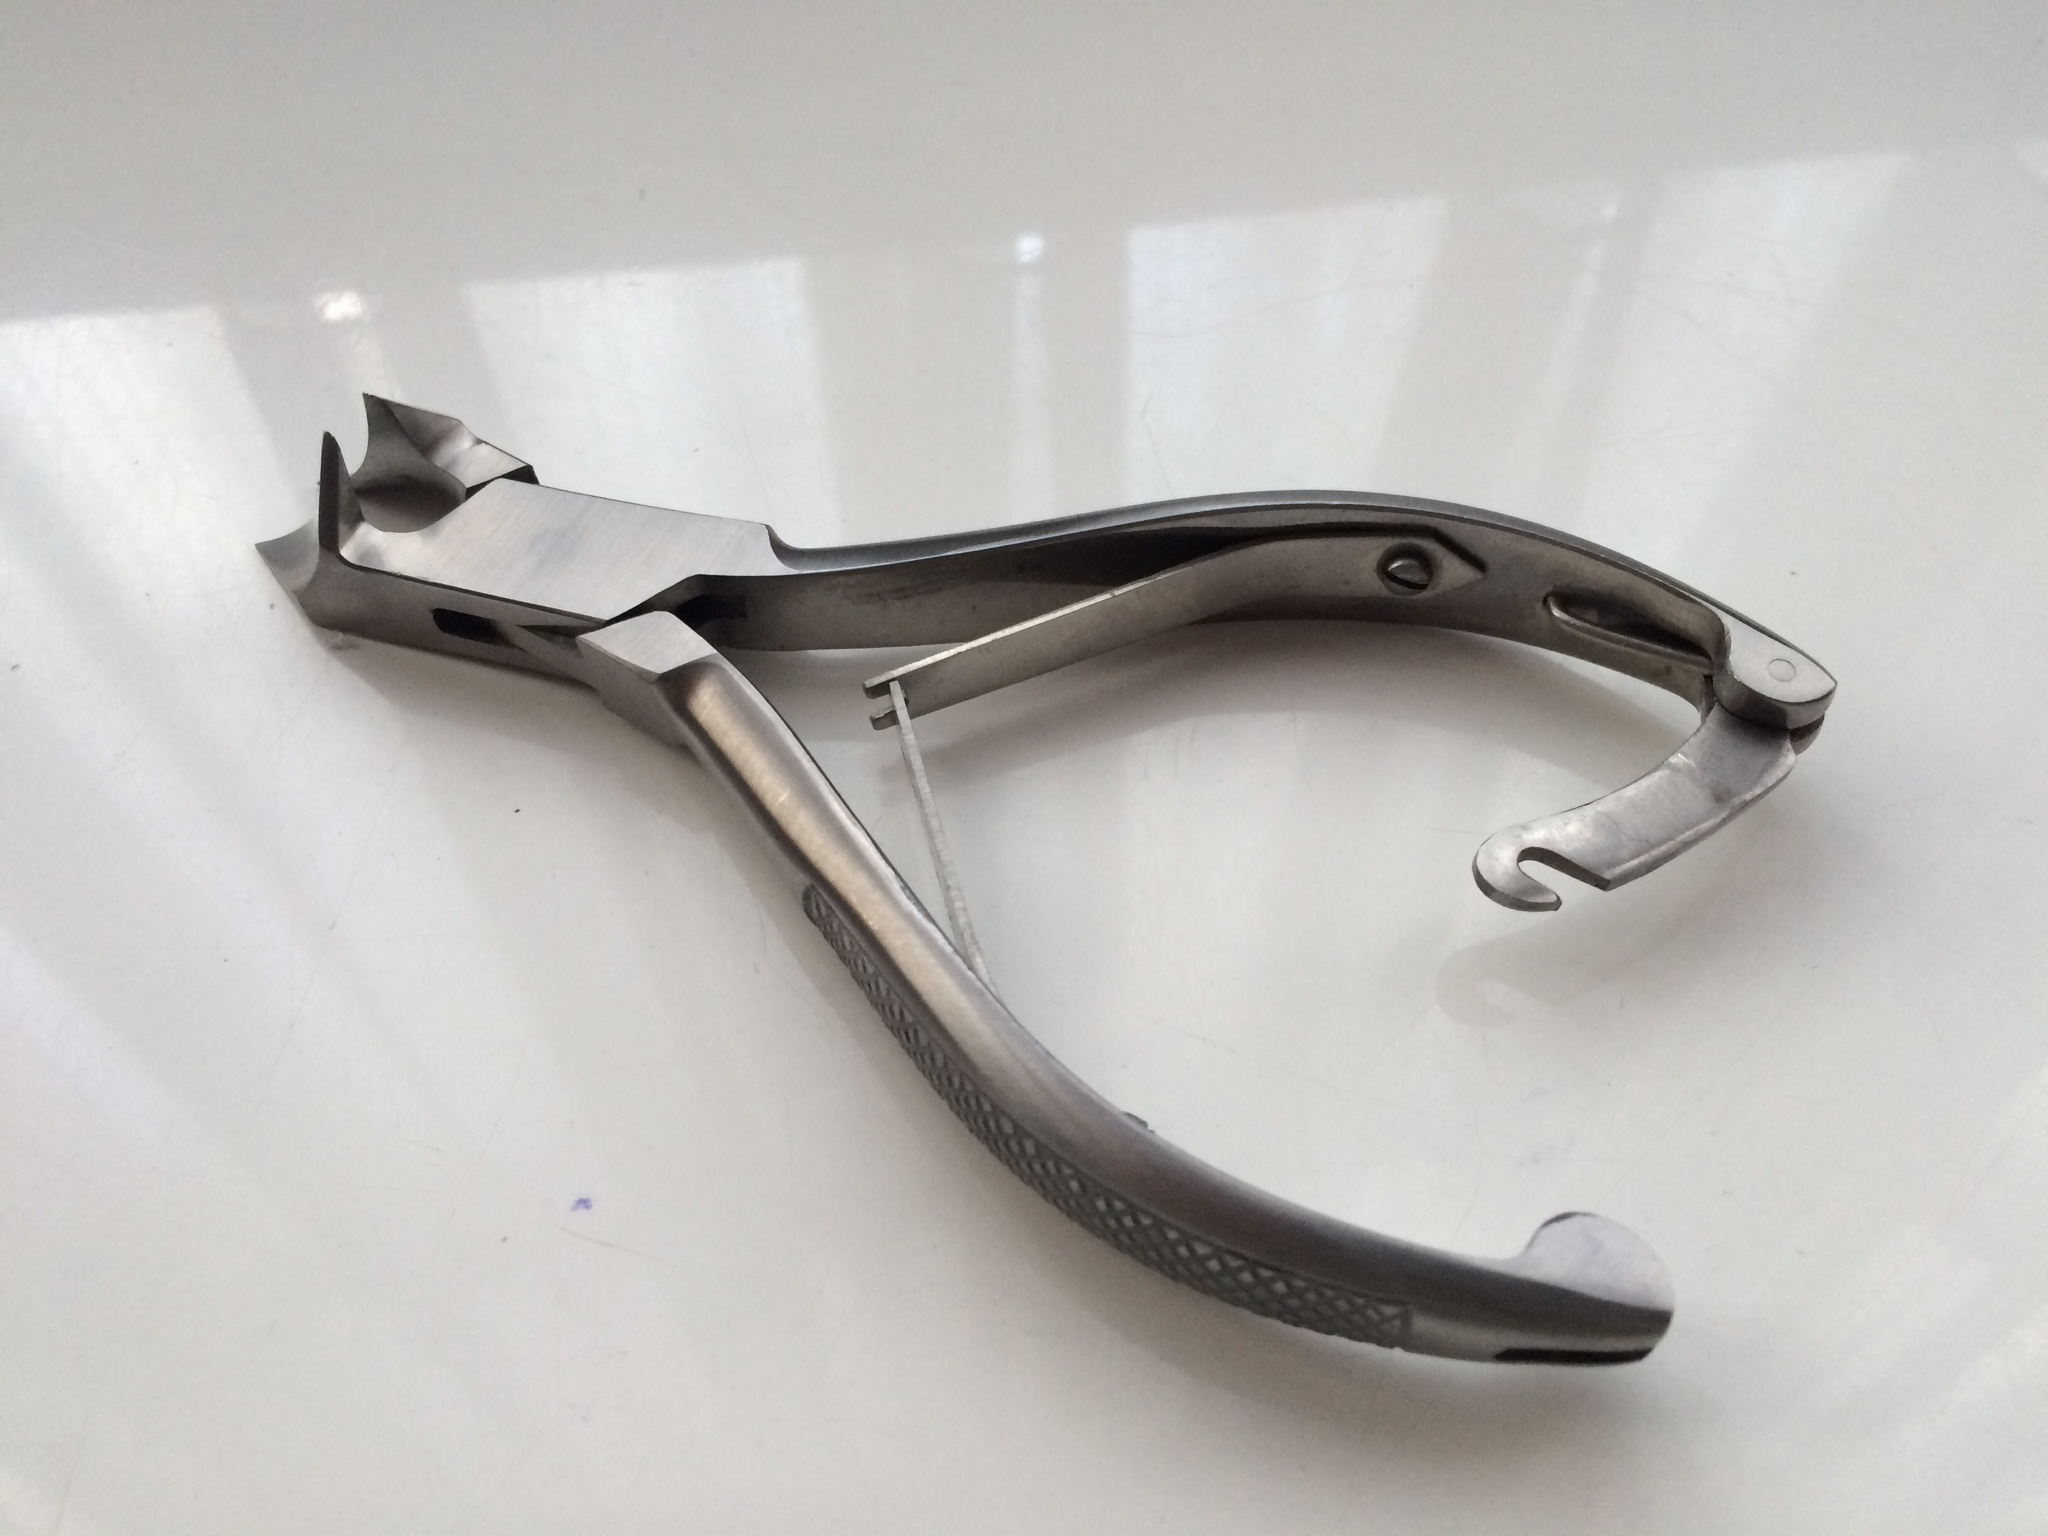 toe nail clipper 5.5 inch stainless moon blade double springs